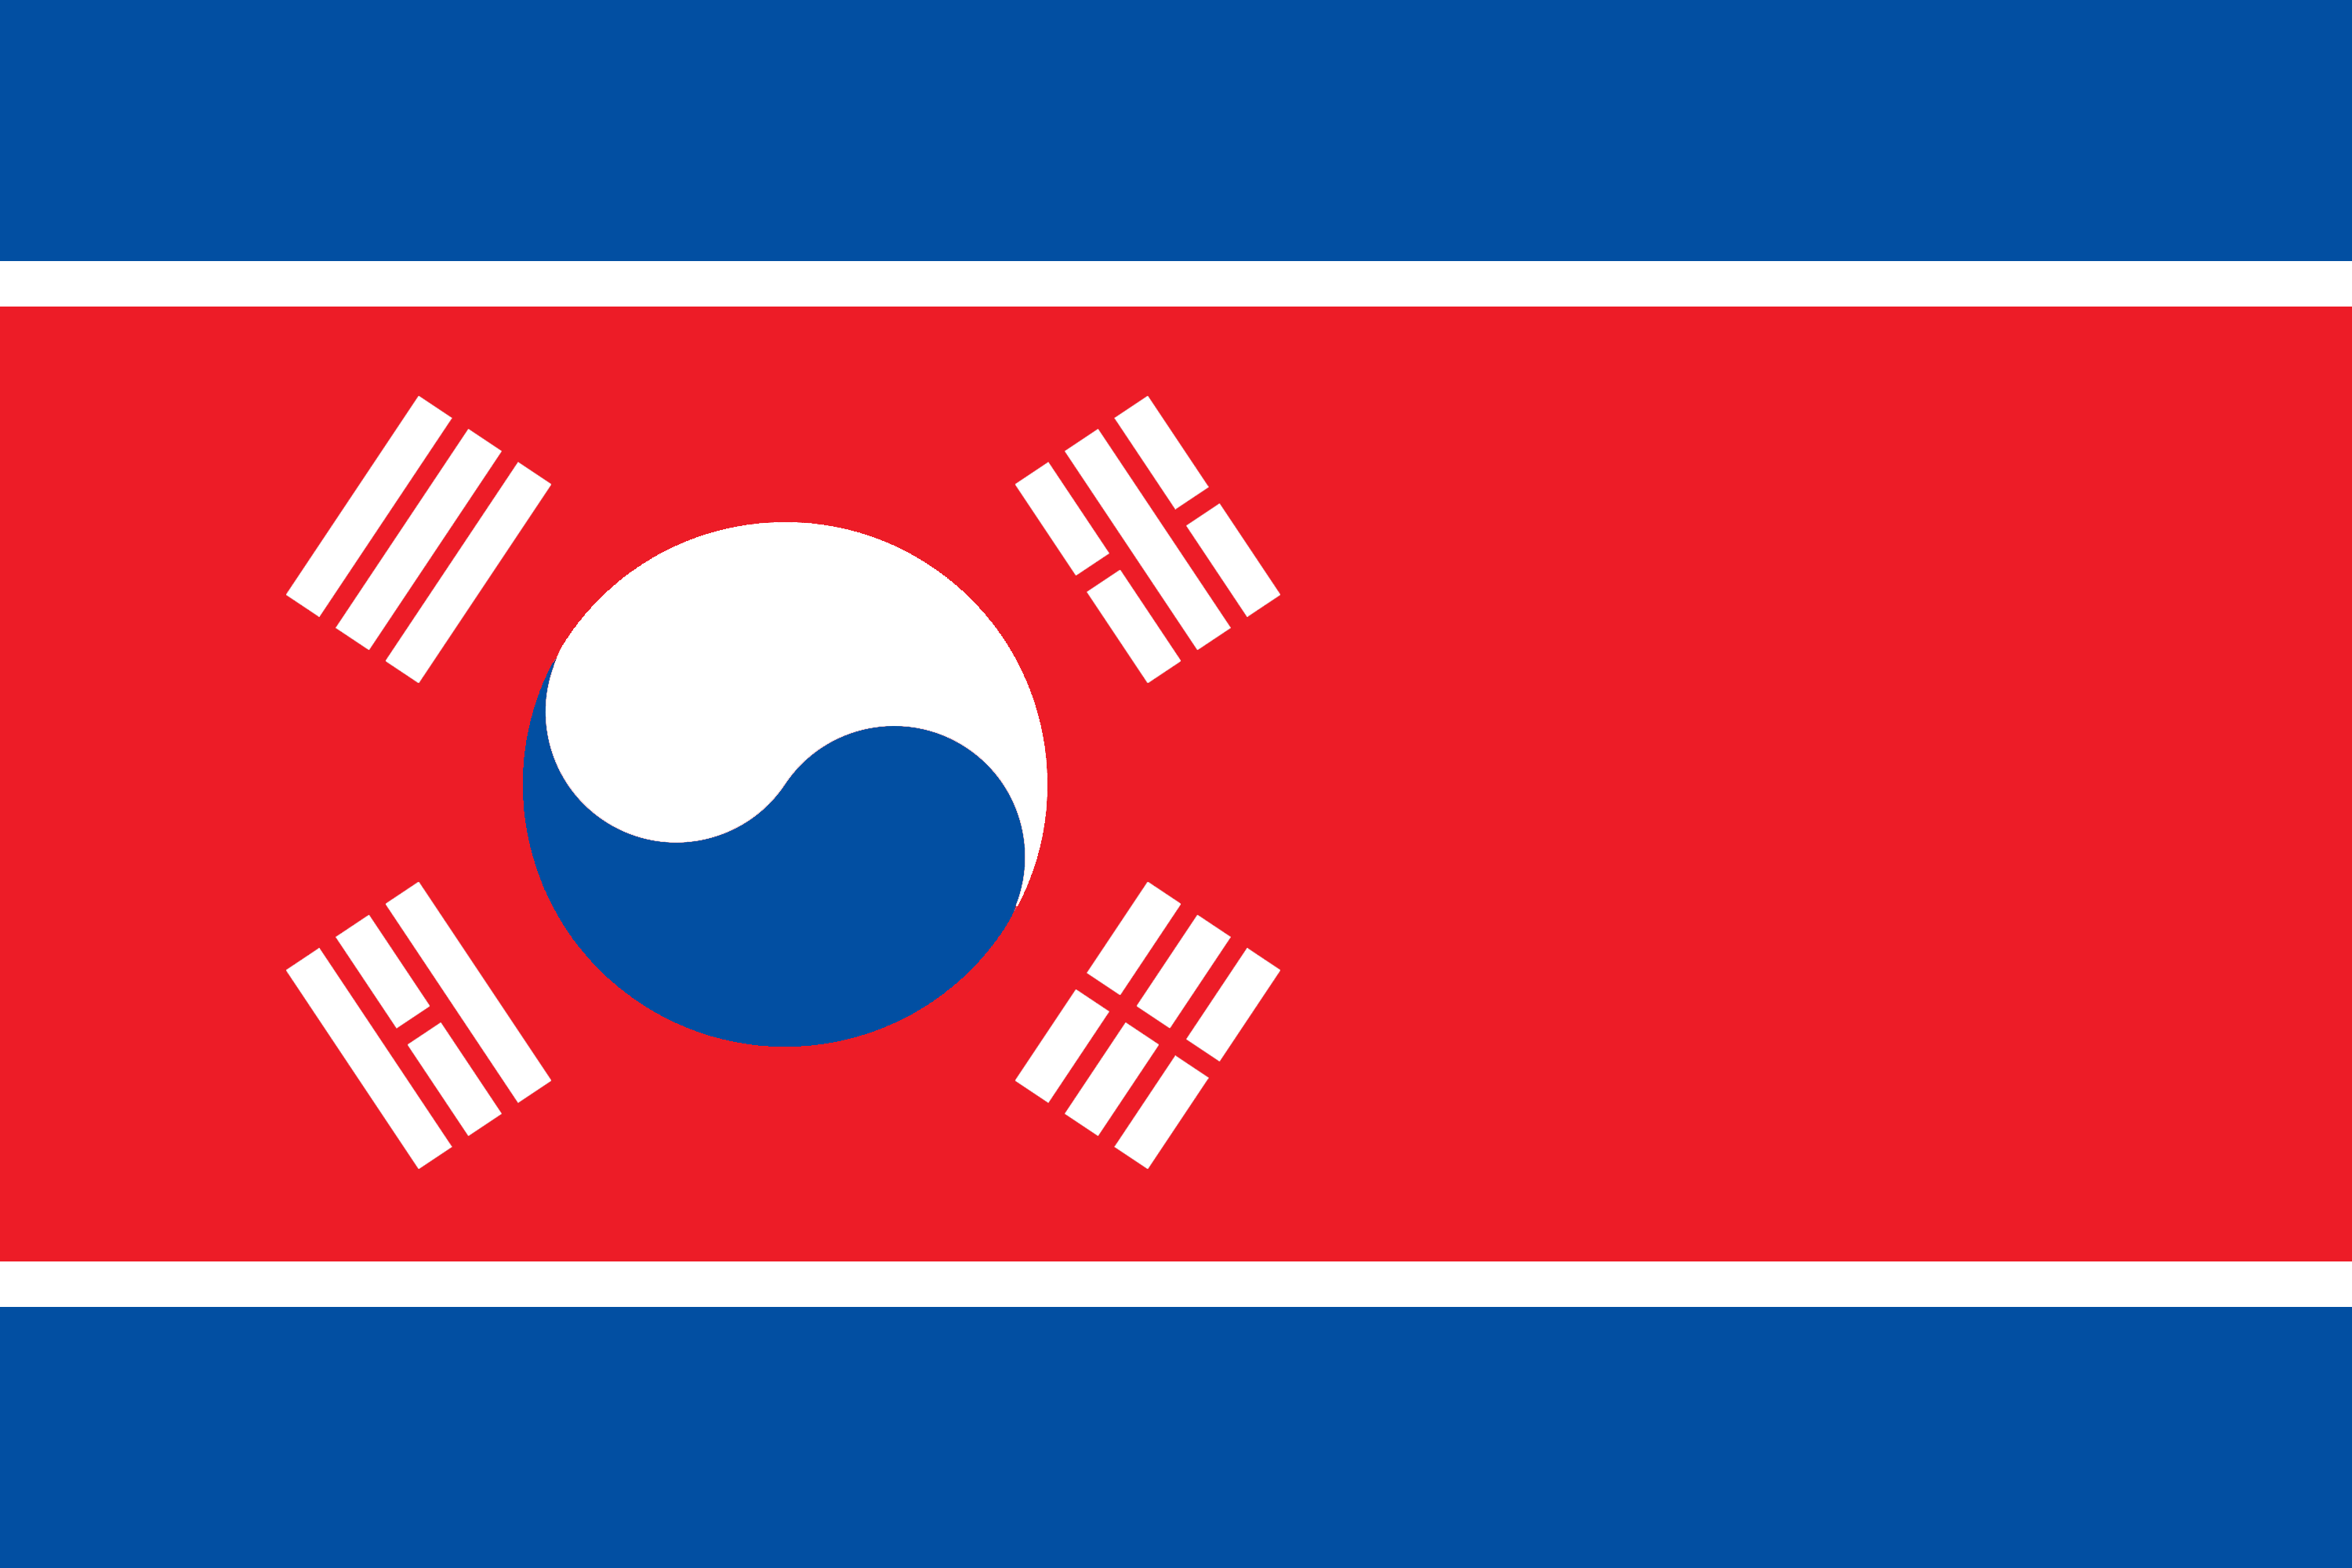 3000x2000 A combination of the North Korean and South Korean Flag : vexillology